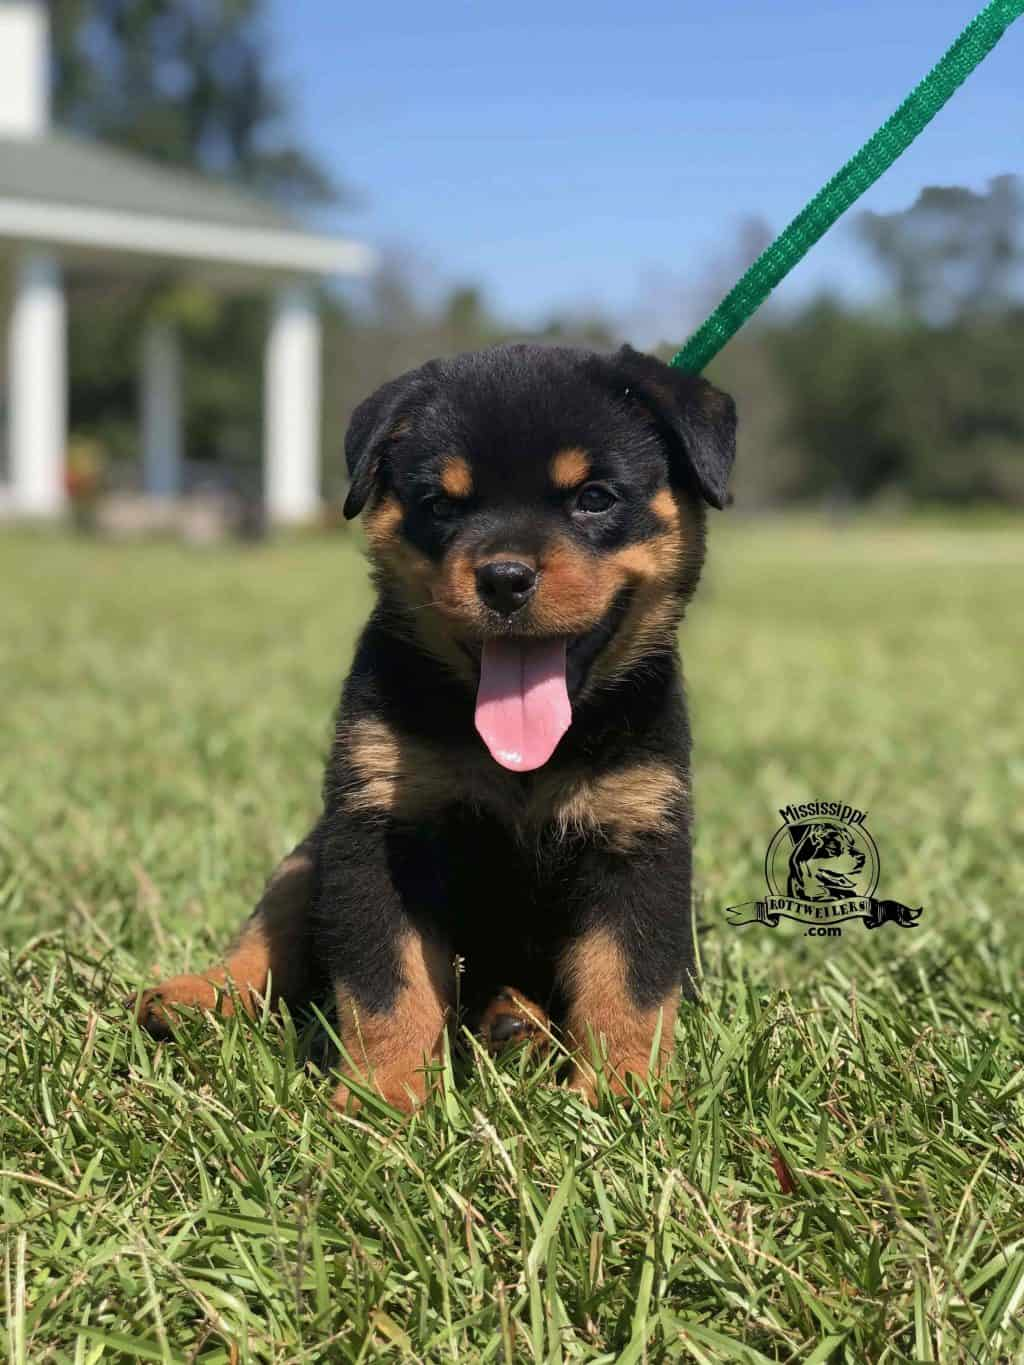 Rottweiler Puppies For Sale Near Me Under $500 Dollars : rottweiler, puppies, under, dollars, Miniature, Rottweilers, Mississippi